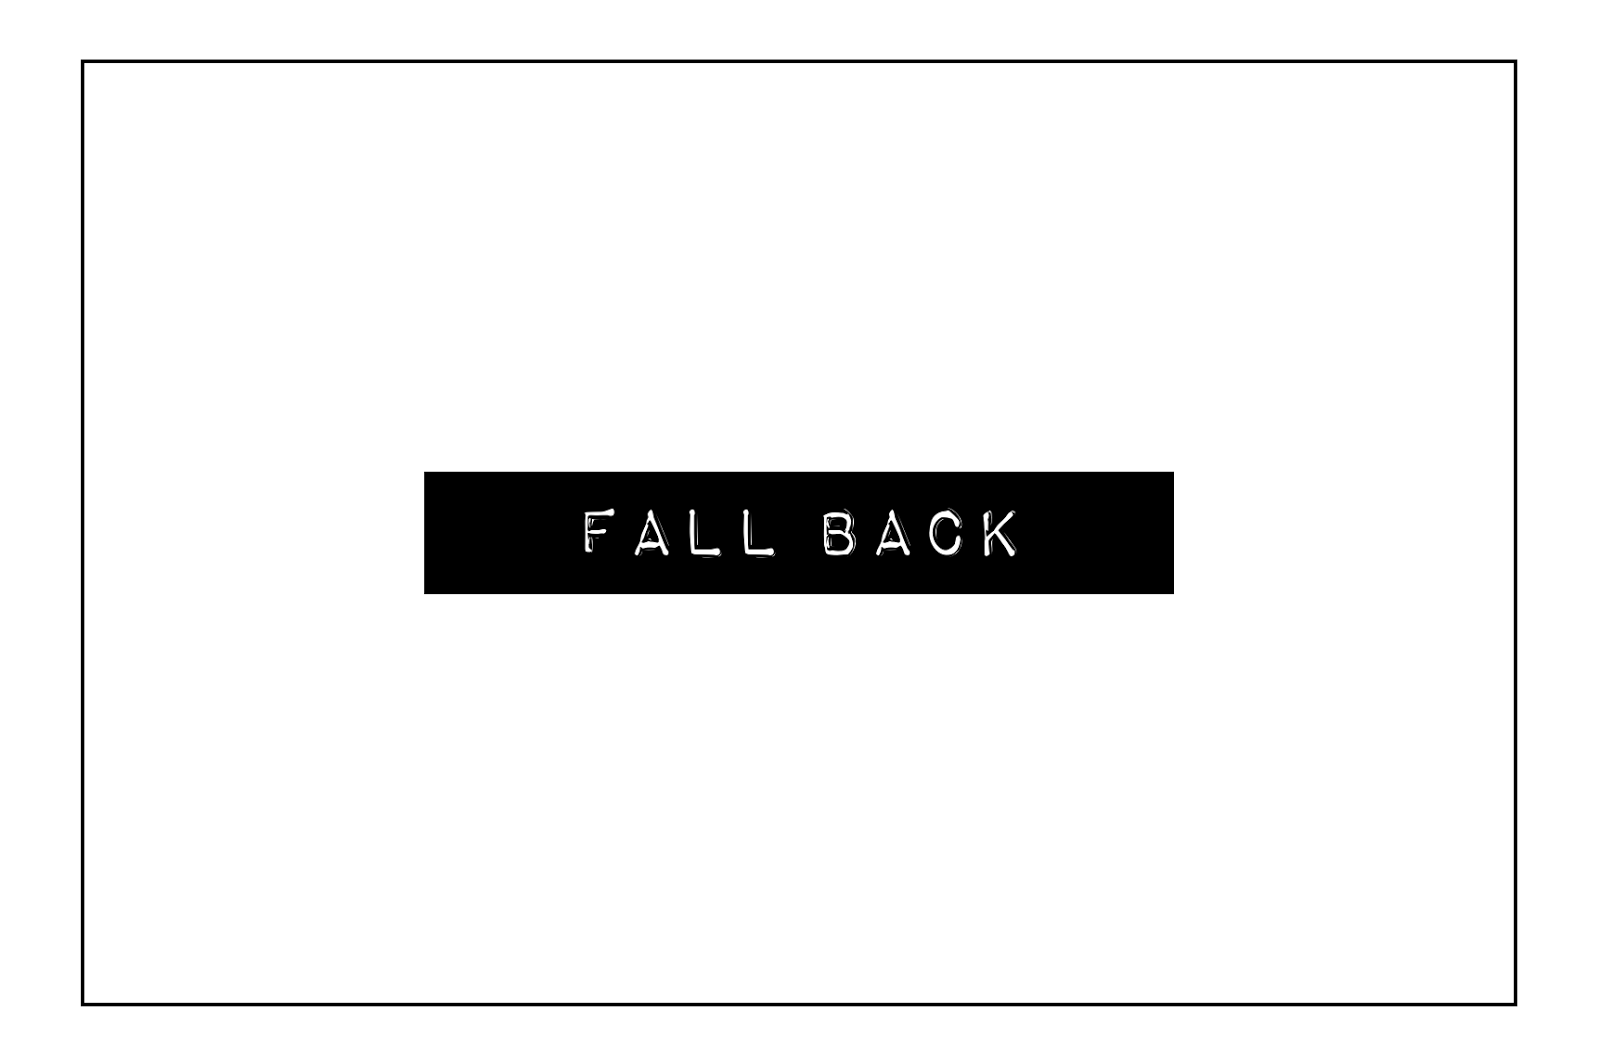 Fall Back | Free Download